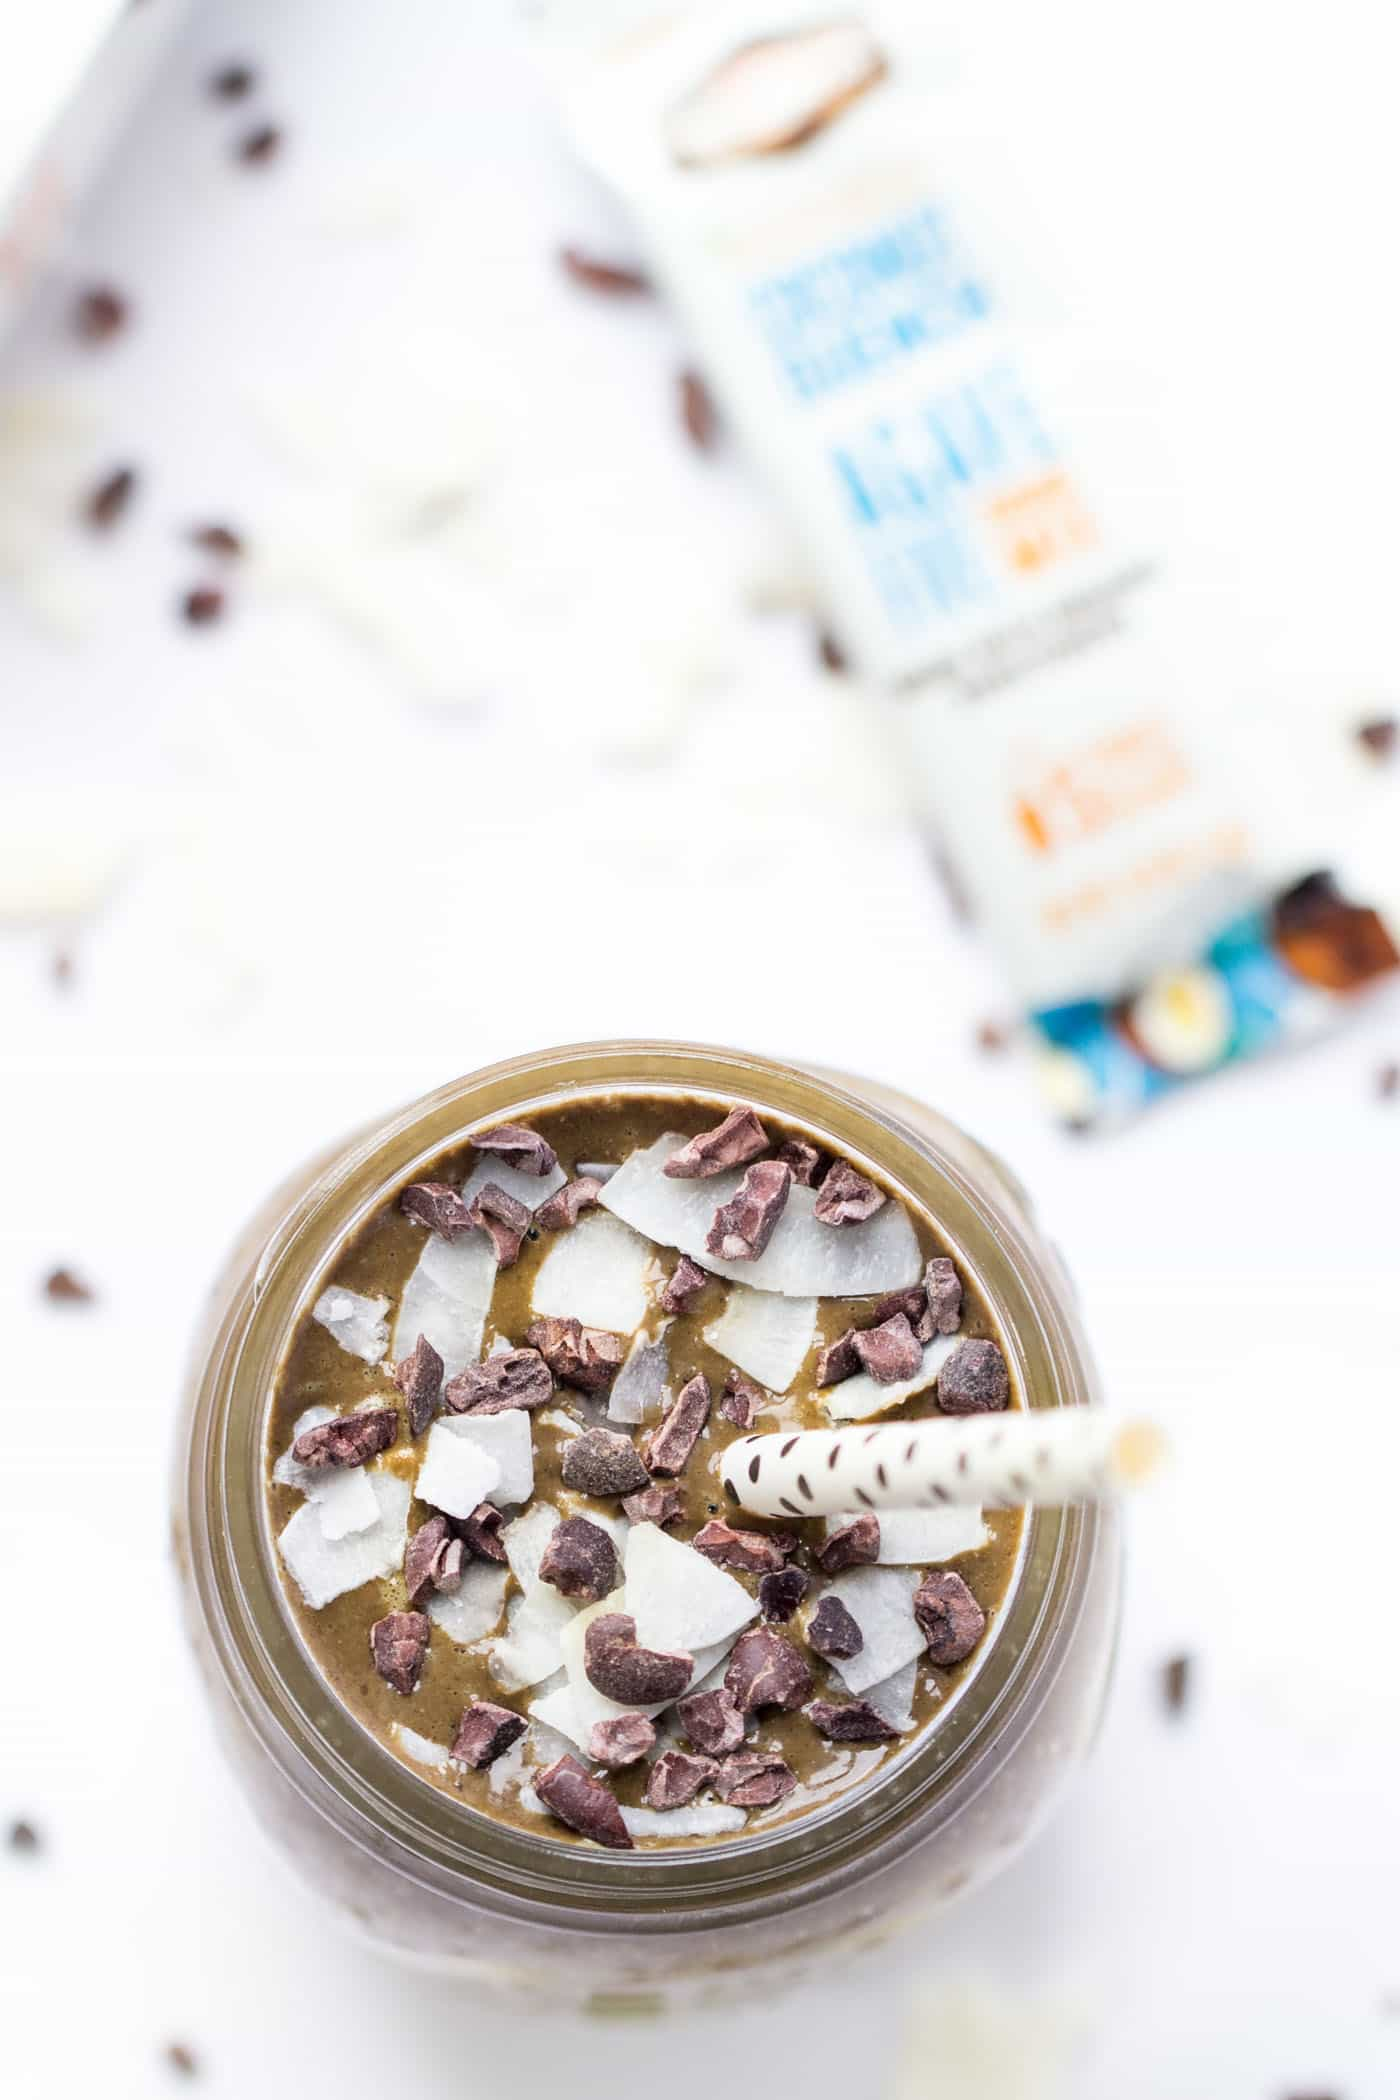 A healthy almond joy smoothie, inspired by the candy bar! This smoothie is naturally sweetened with dates and frozen banana, and made super creamy with the addition of coconut milk and quinoa!